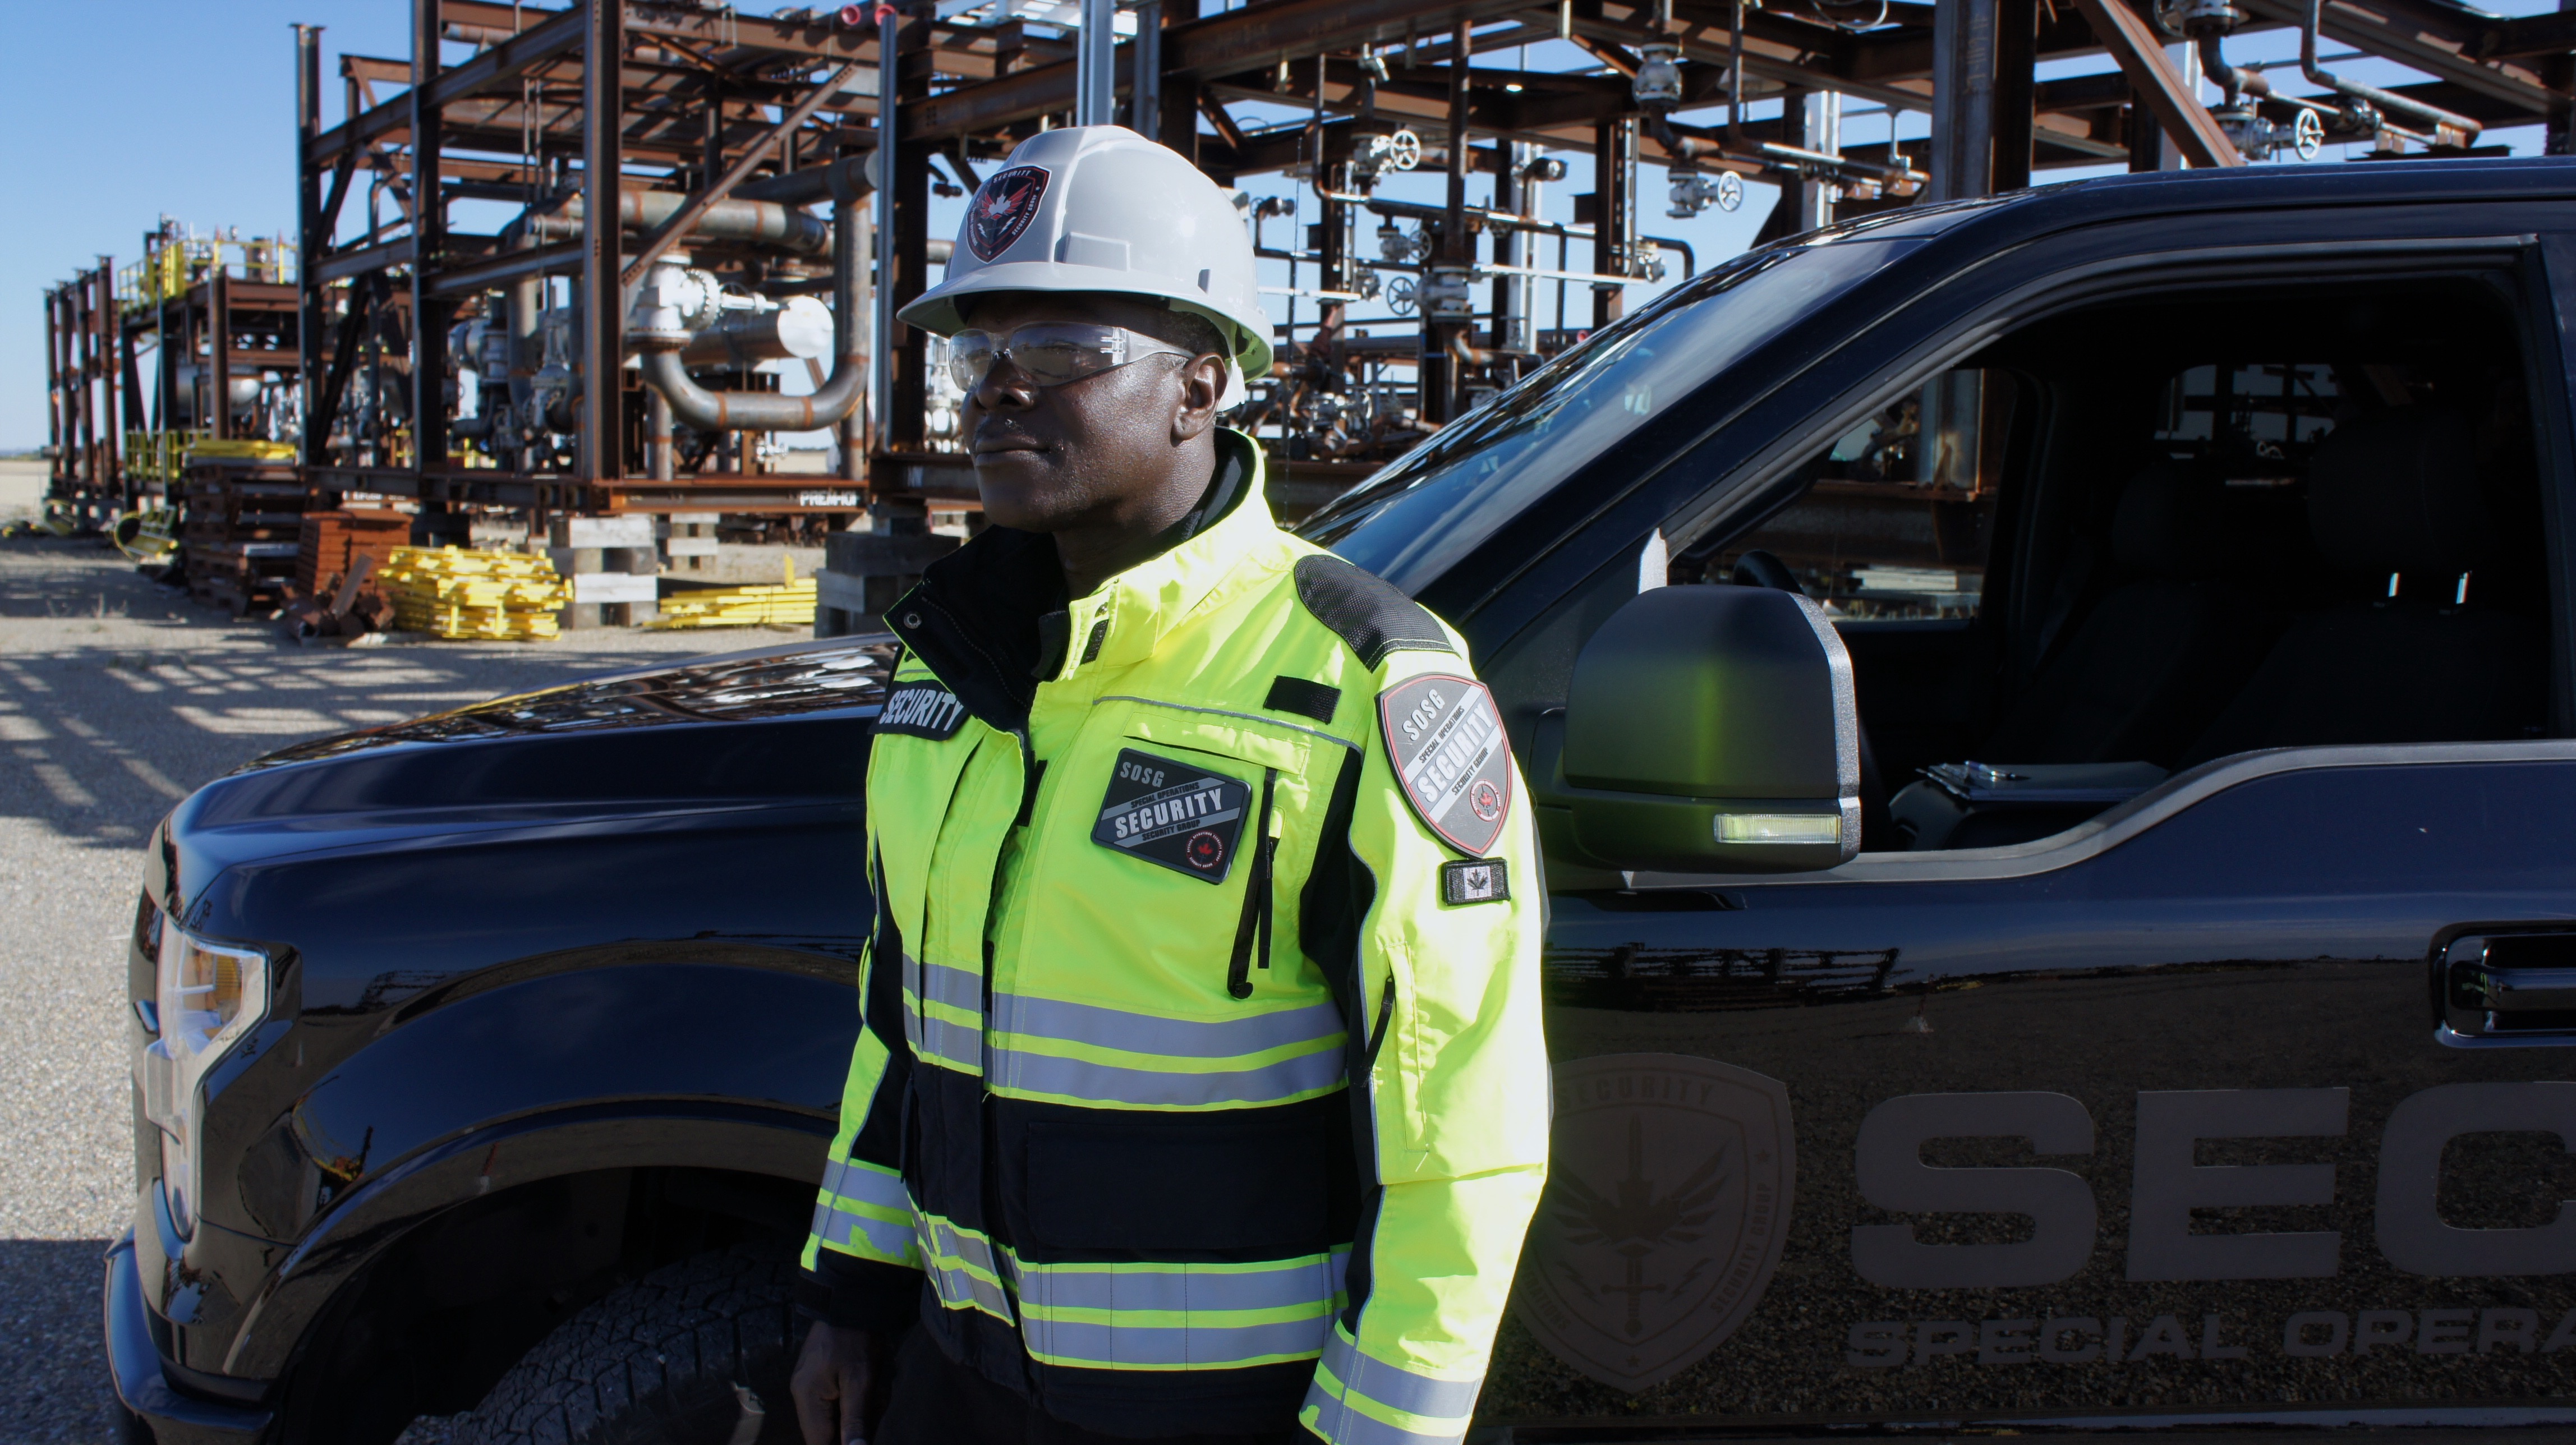 Energy Site Security